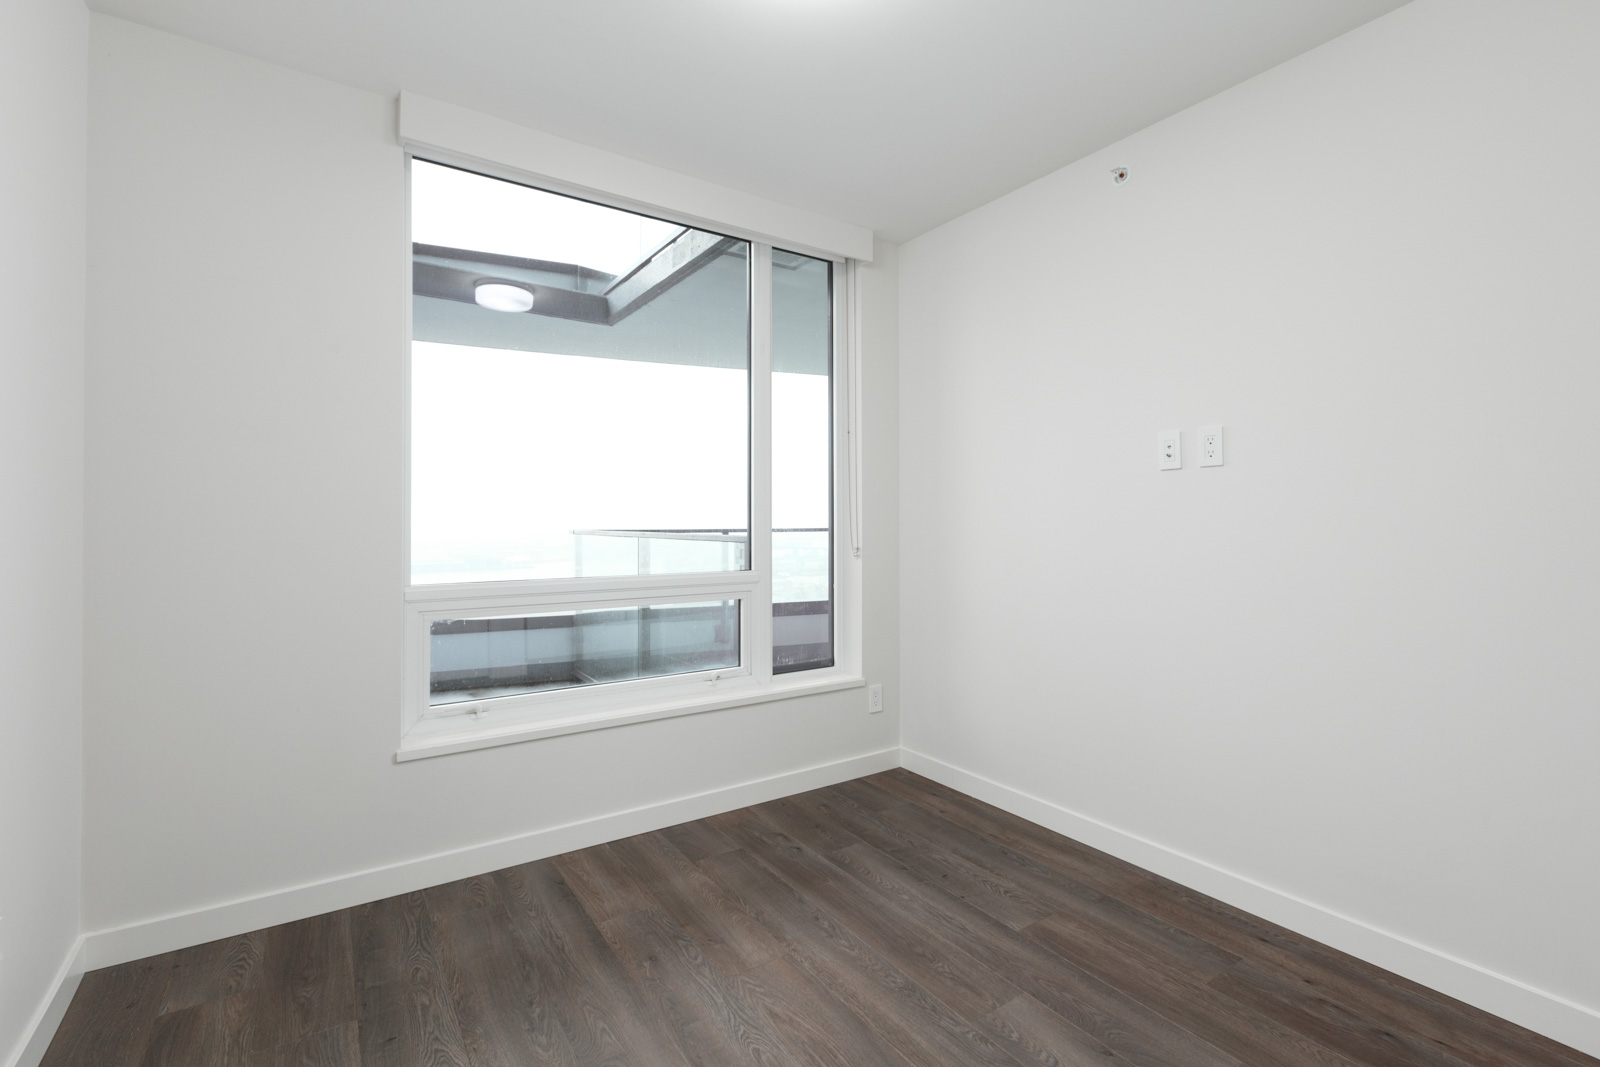 window from bedroom of rental condo with dark hardwood floors and white walls